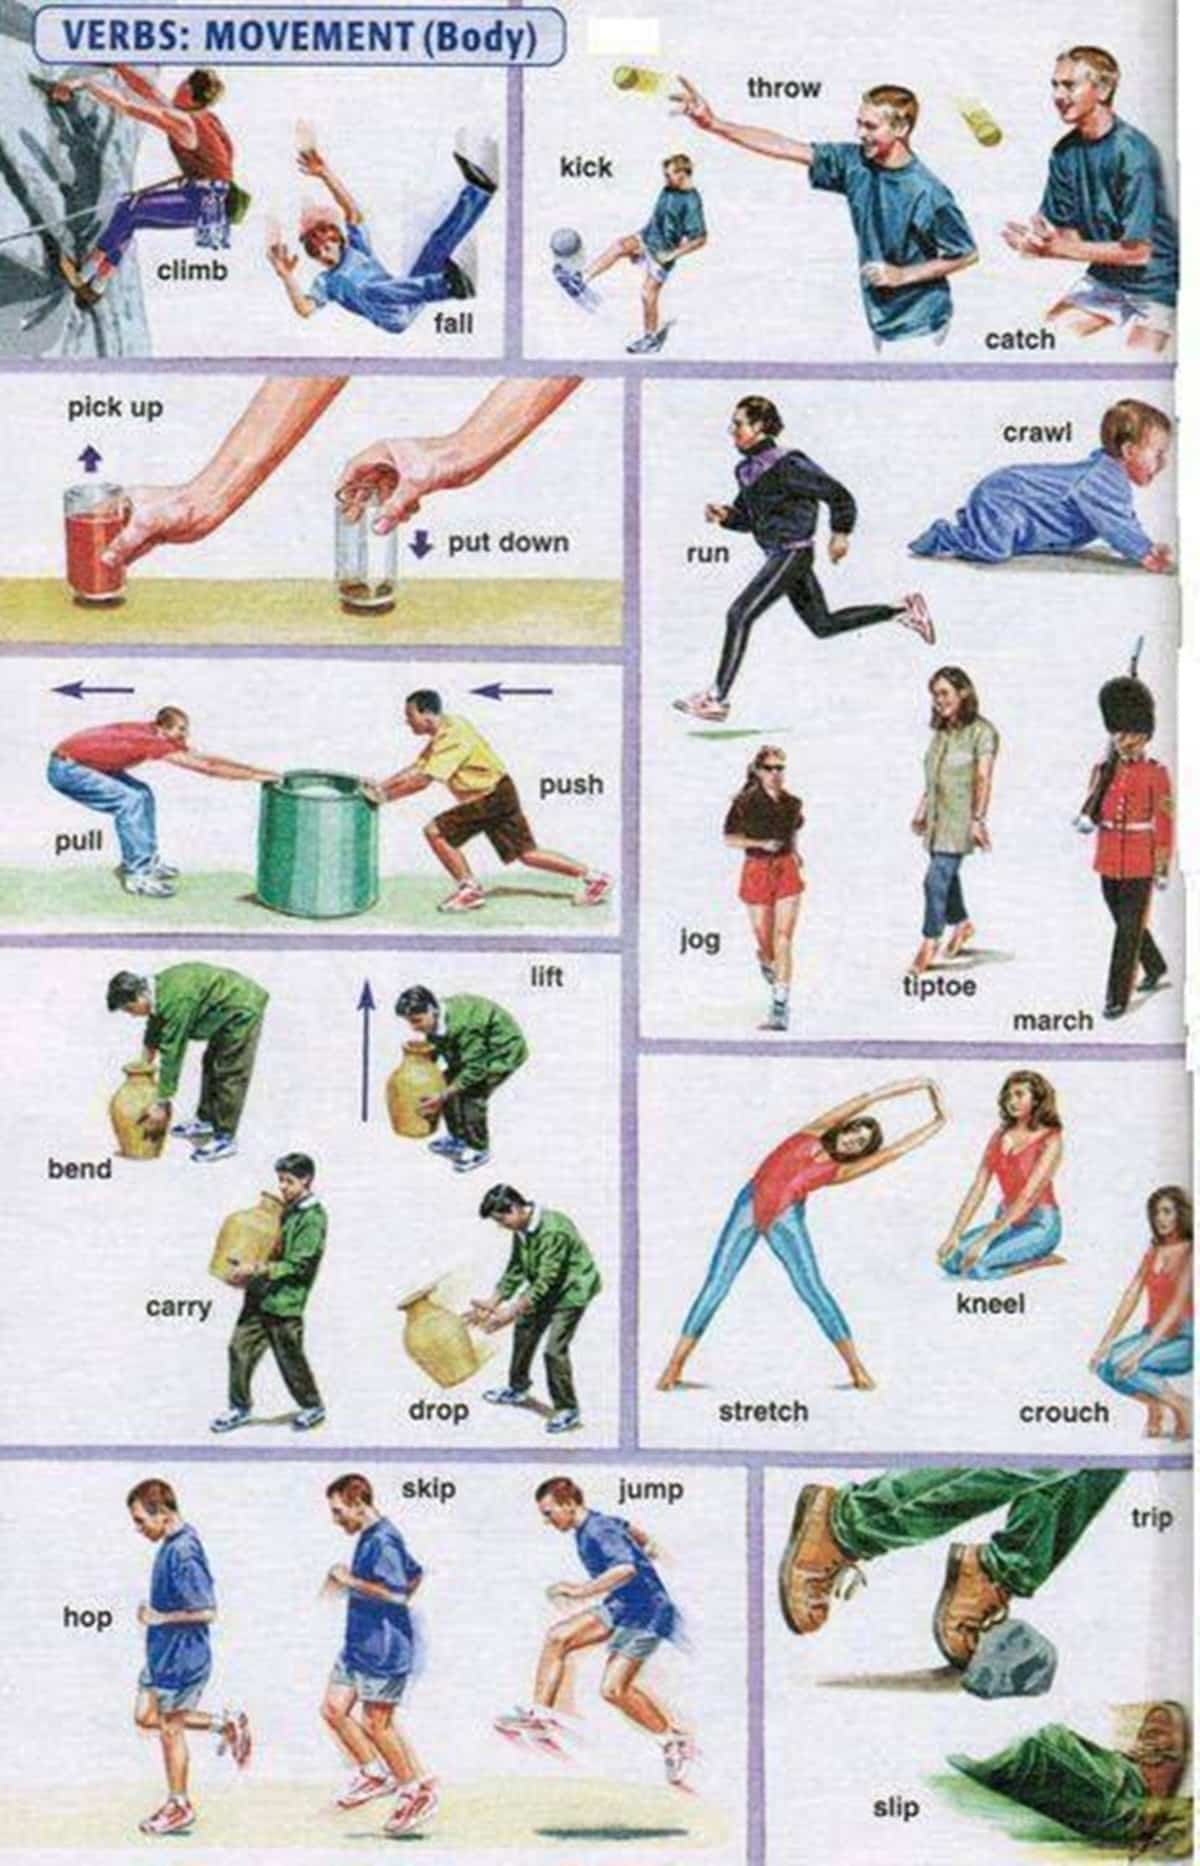 Verbs to Express Body Movement in English 14